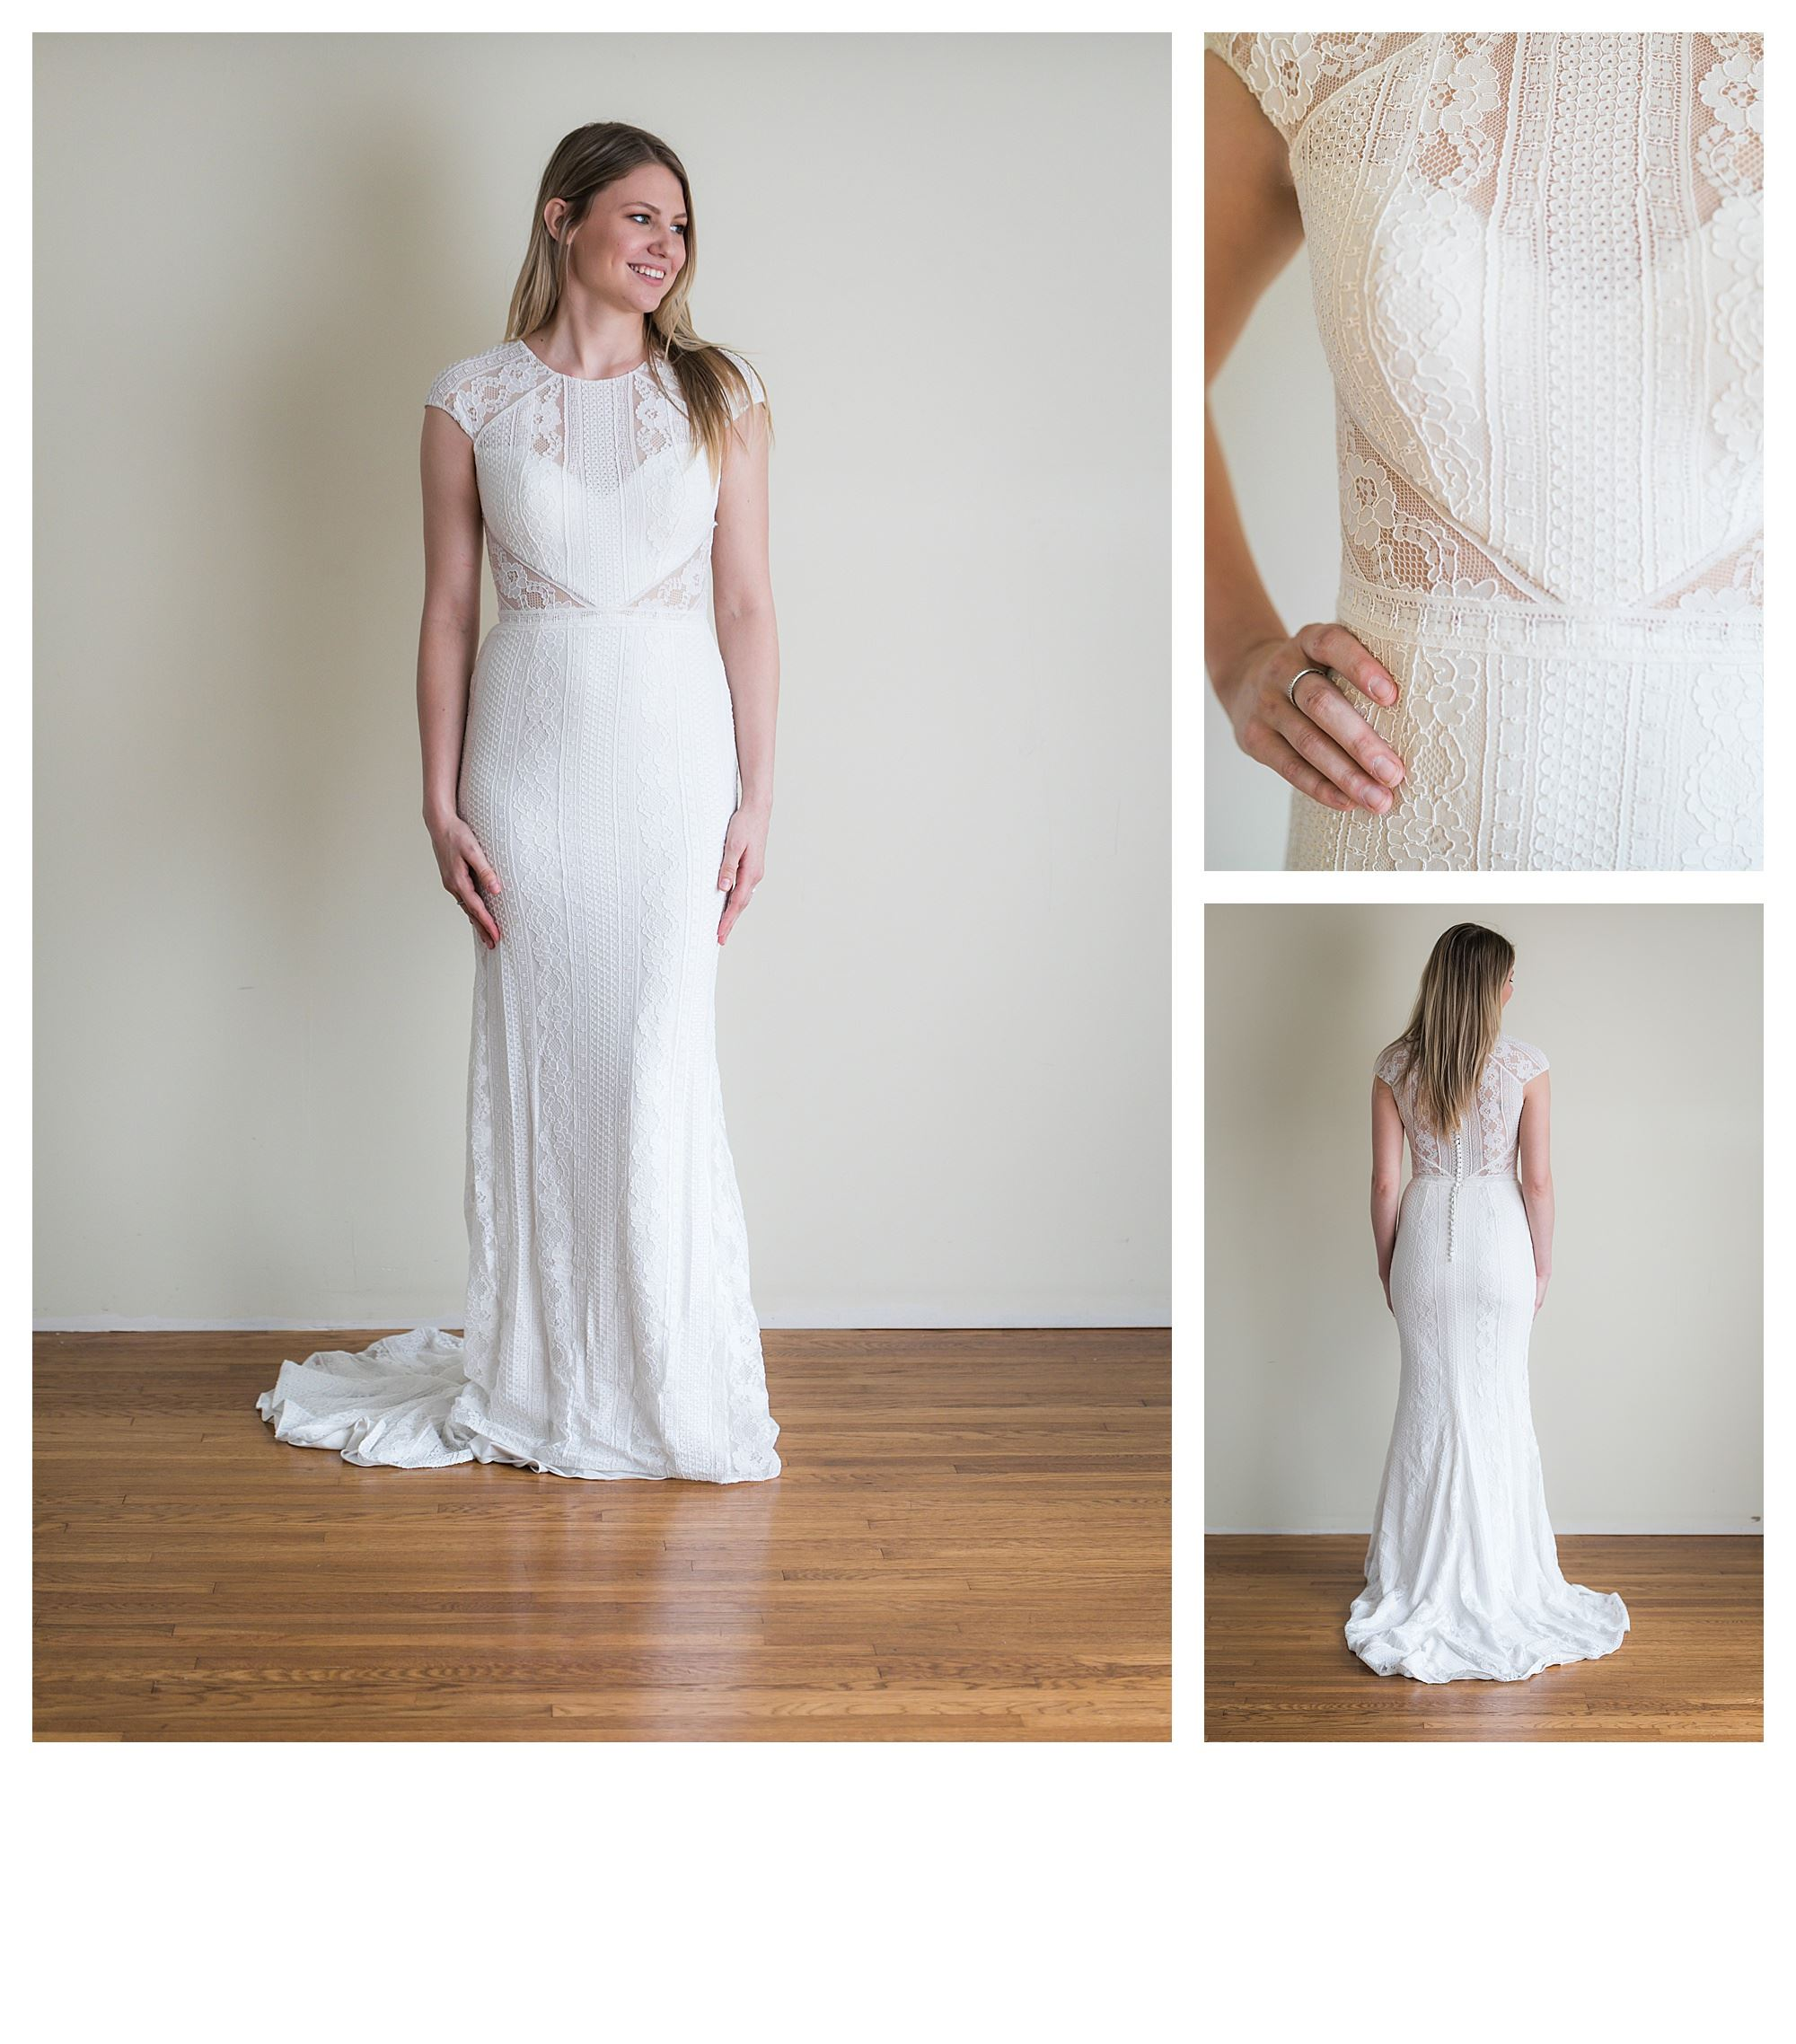 Sari - Size 6 - Sand/Ivory/Nude - Originally priced $1399 - Sample box price $999